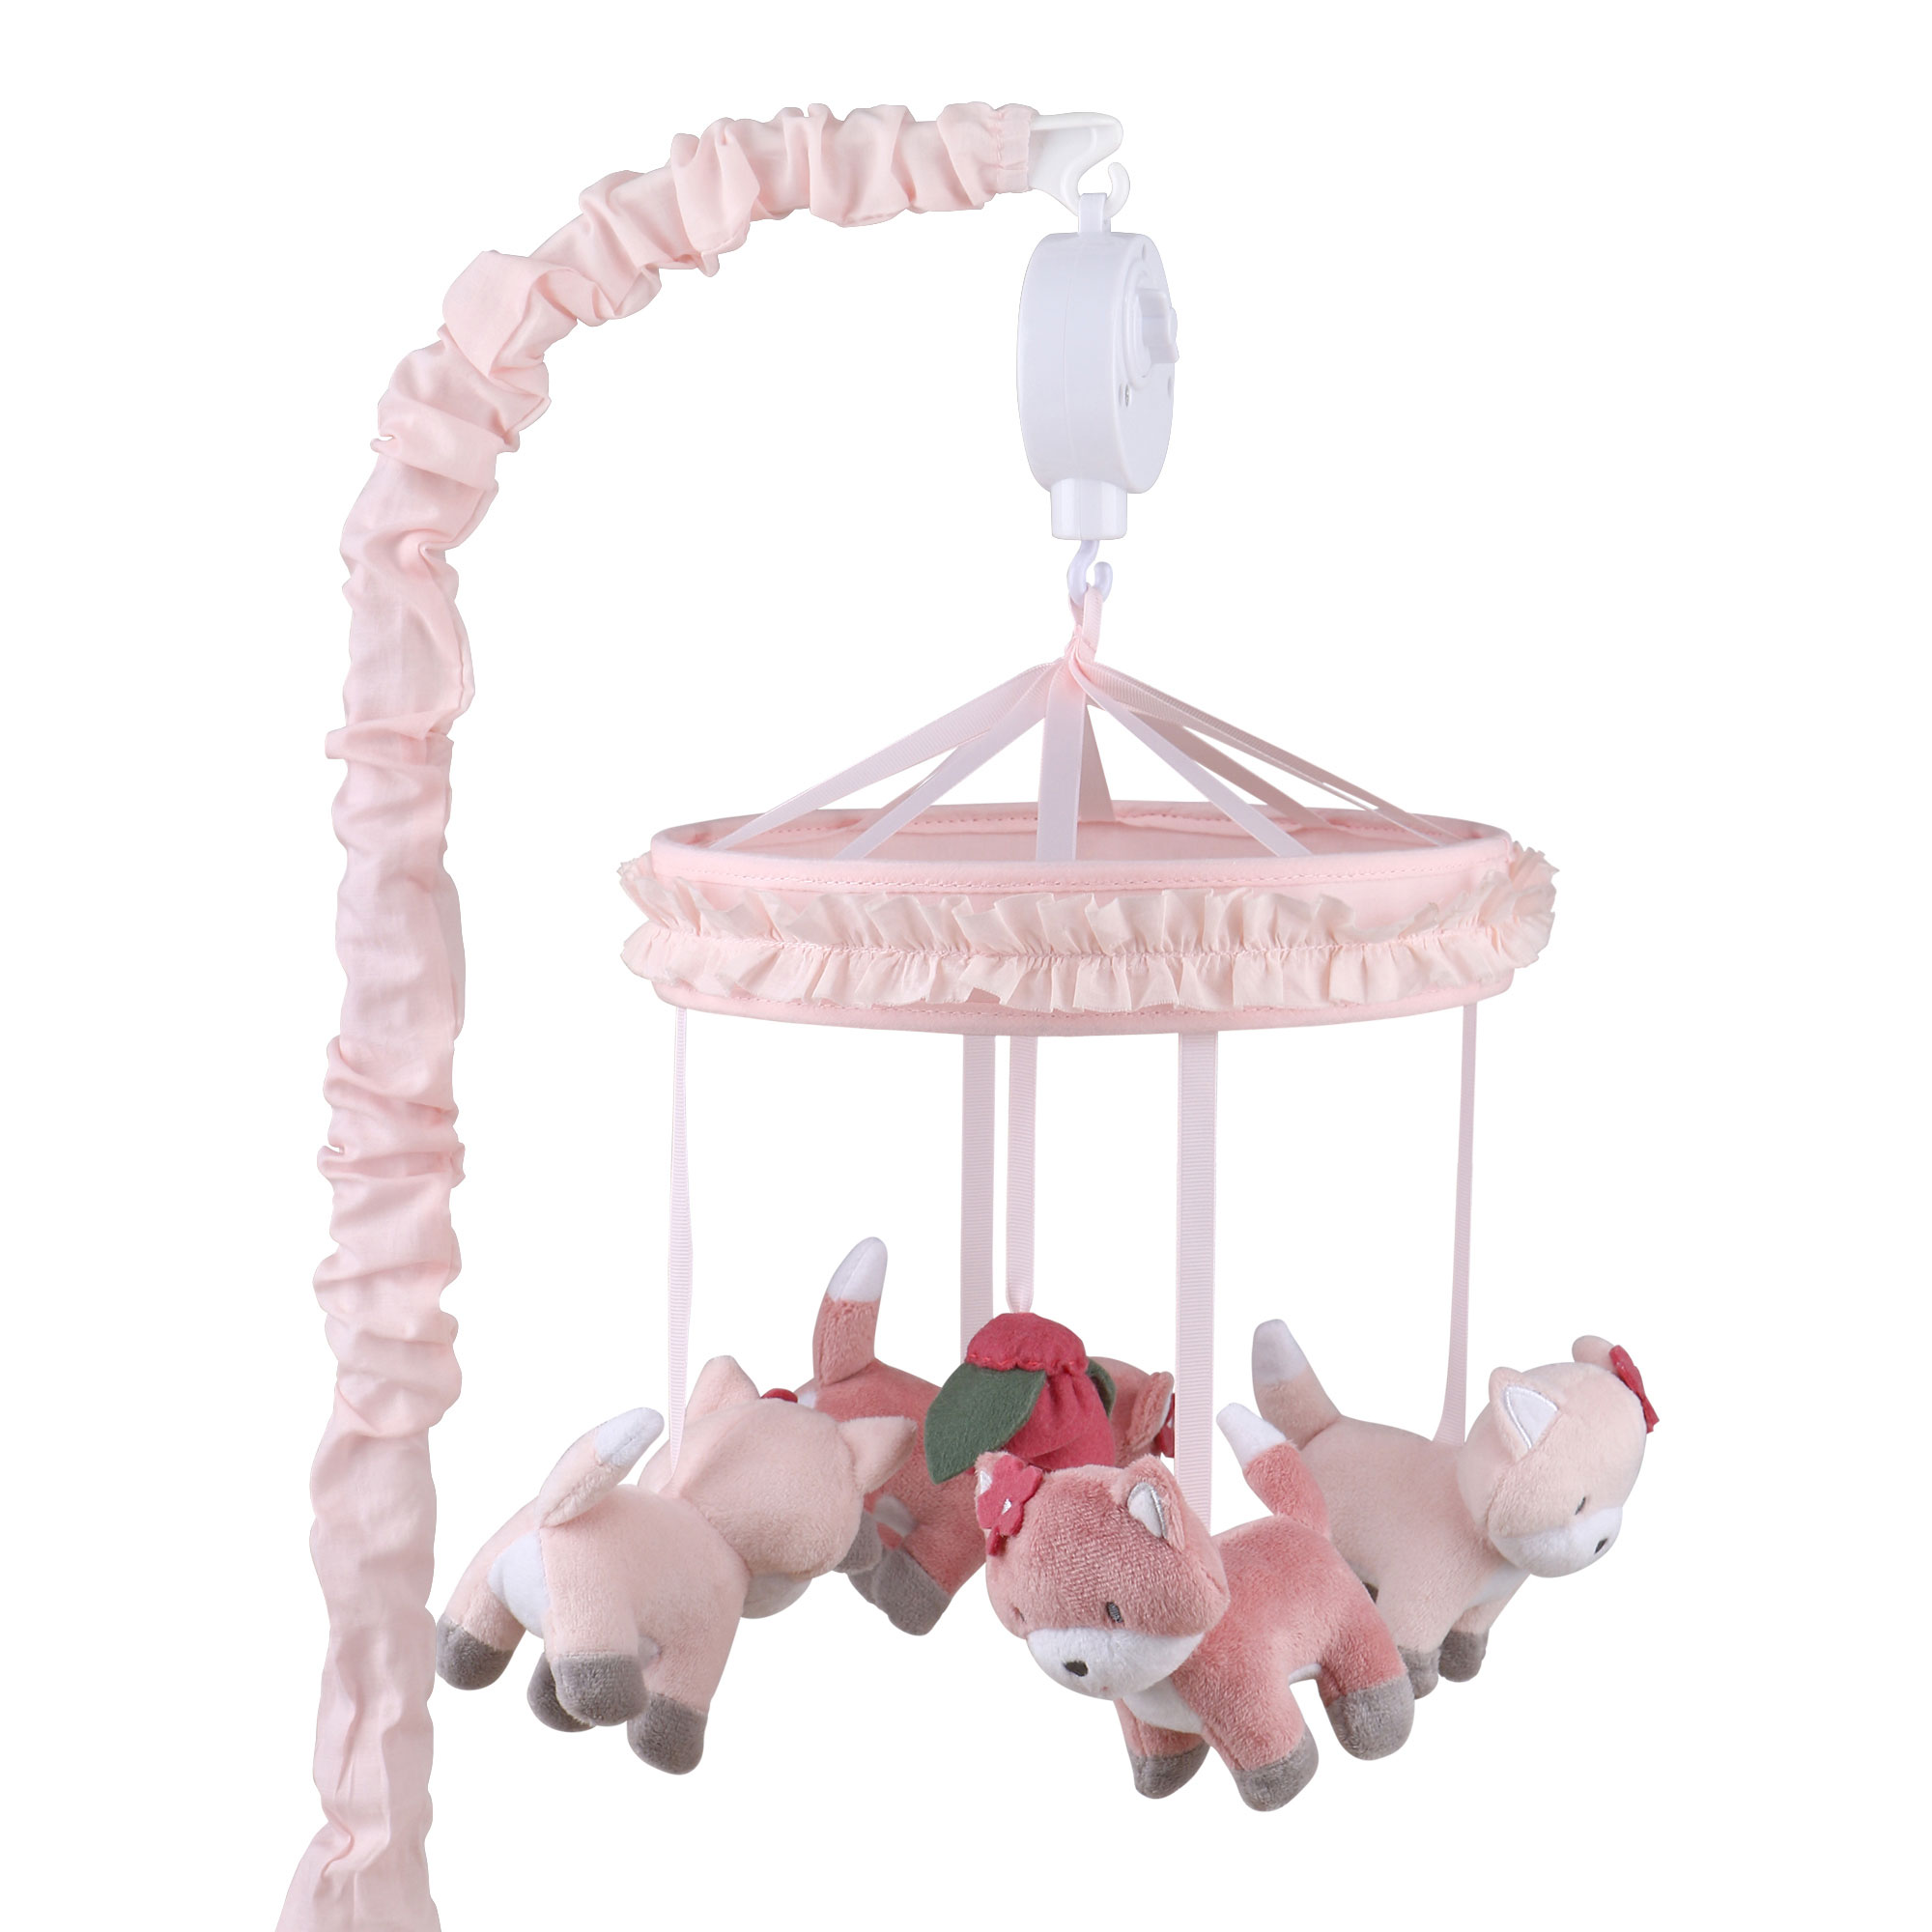 Rose Pink Fox Musical Baby Crib Mobile by The Peanutshell